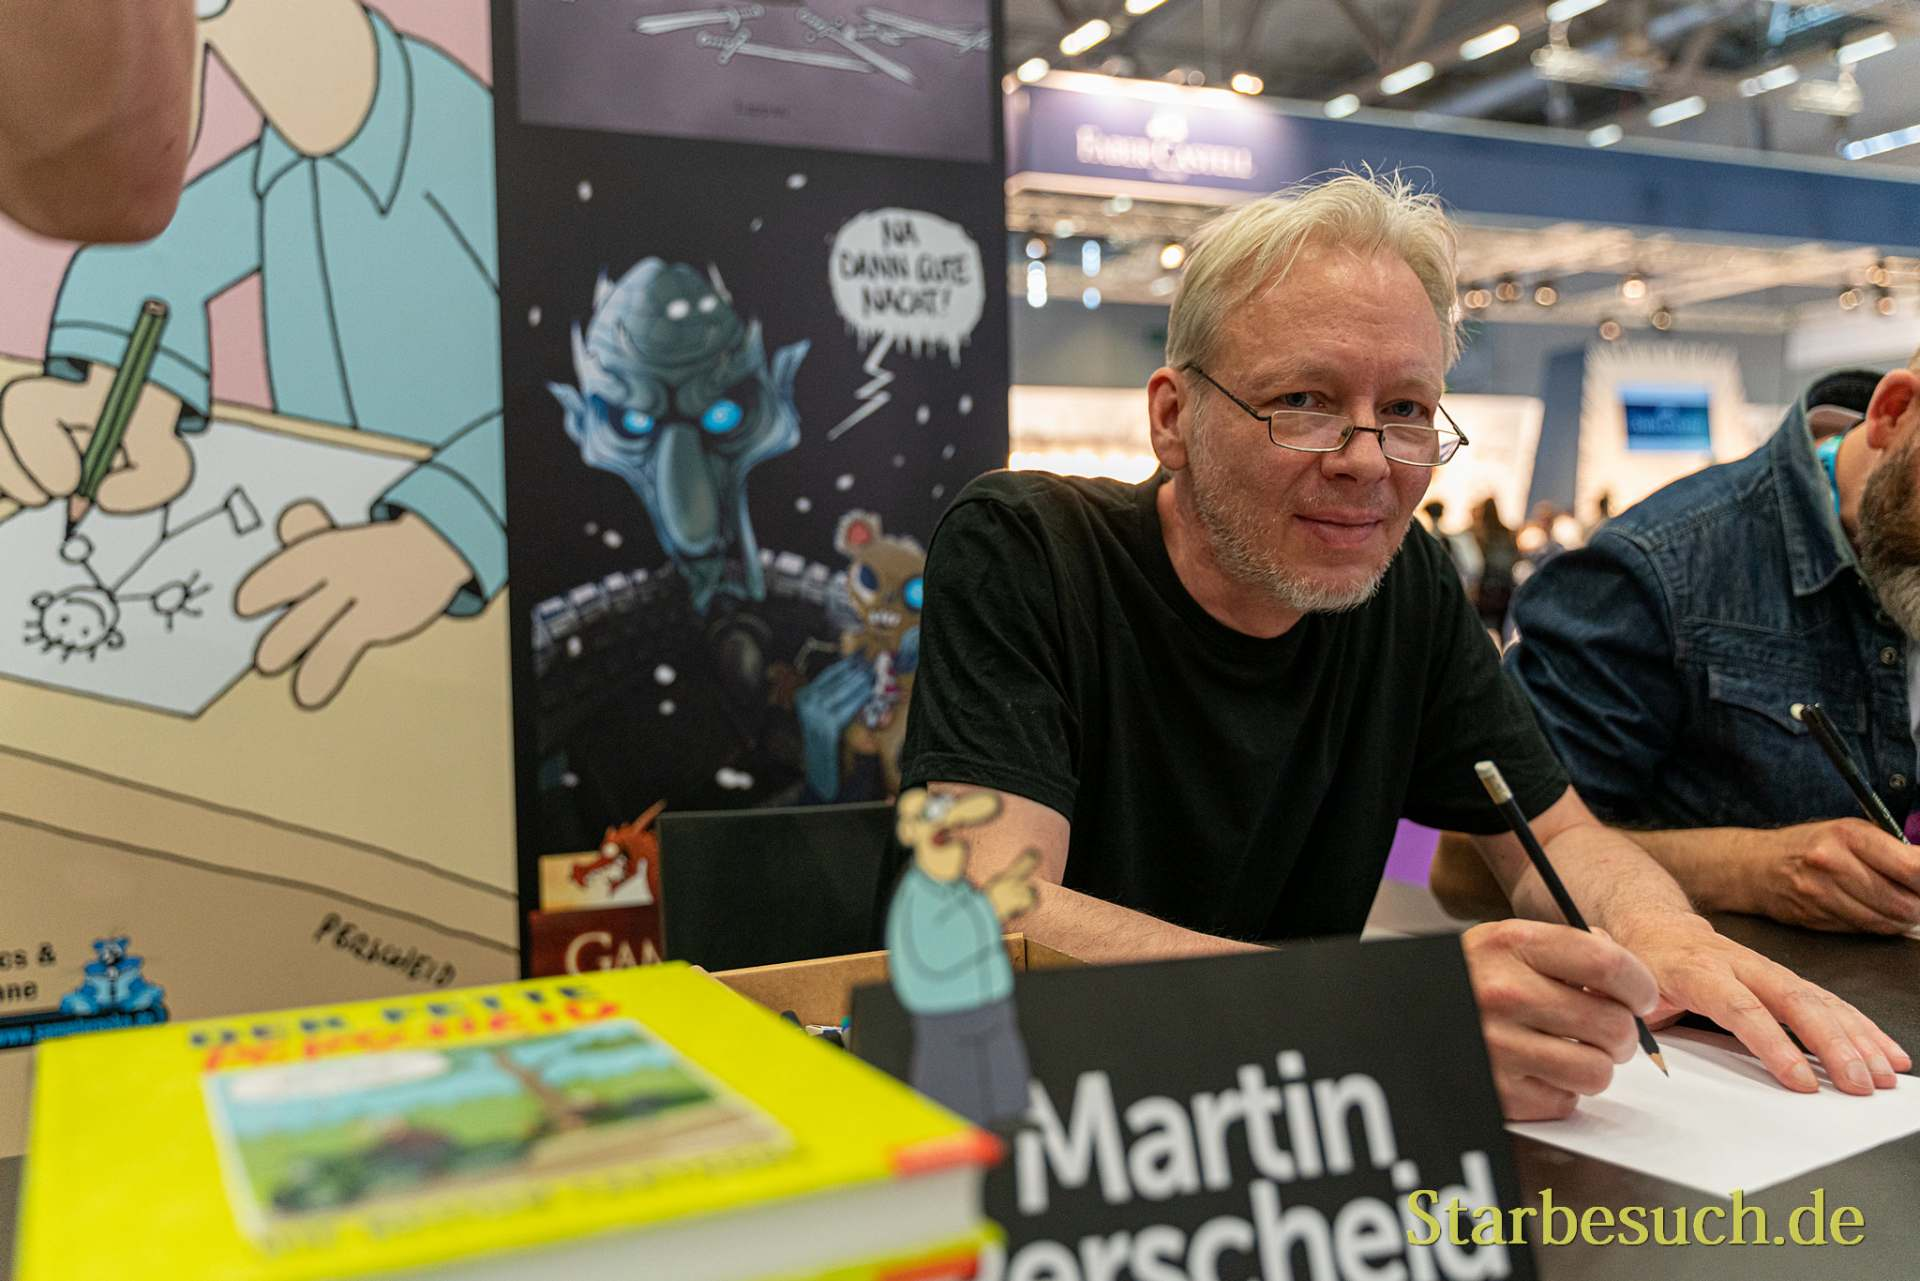 COLOGNE, GERMANY - JUN 28th 2019: Martin Perscheid at CCXP Cologne